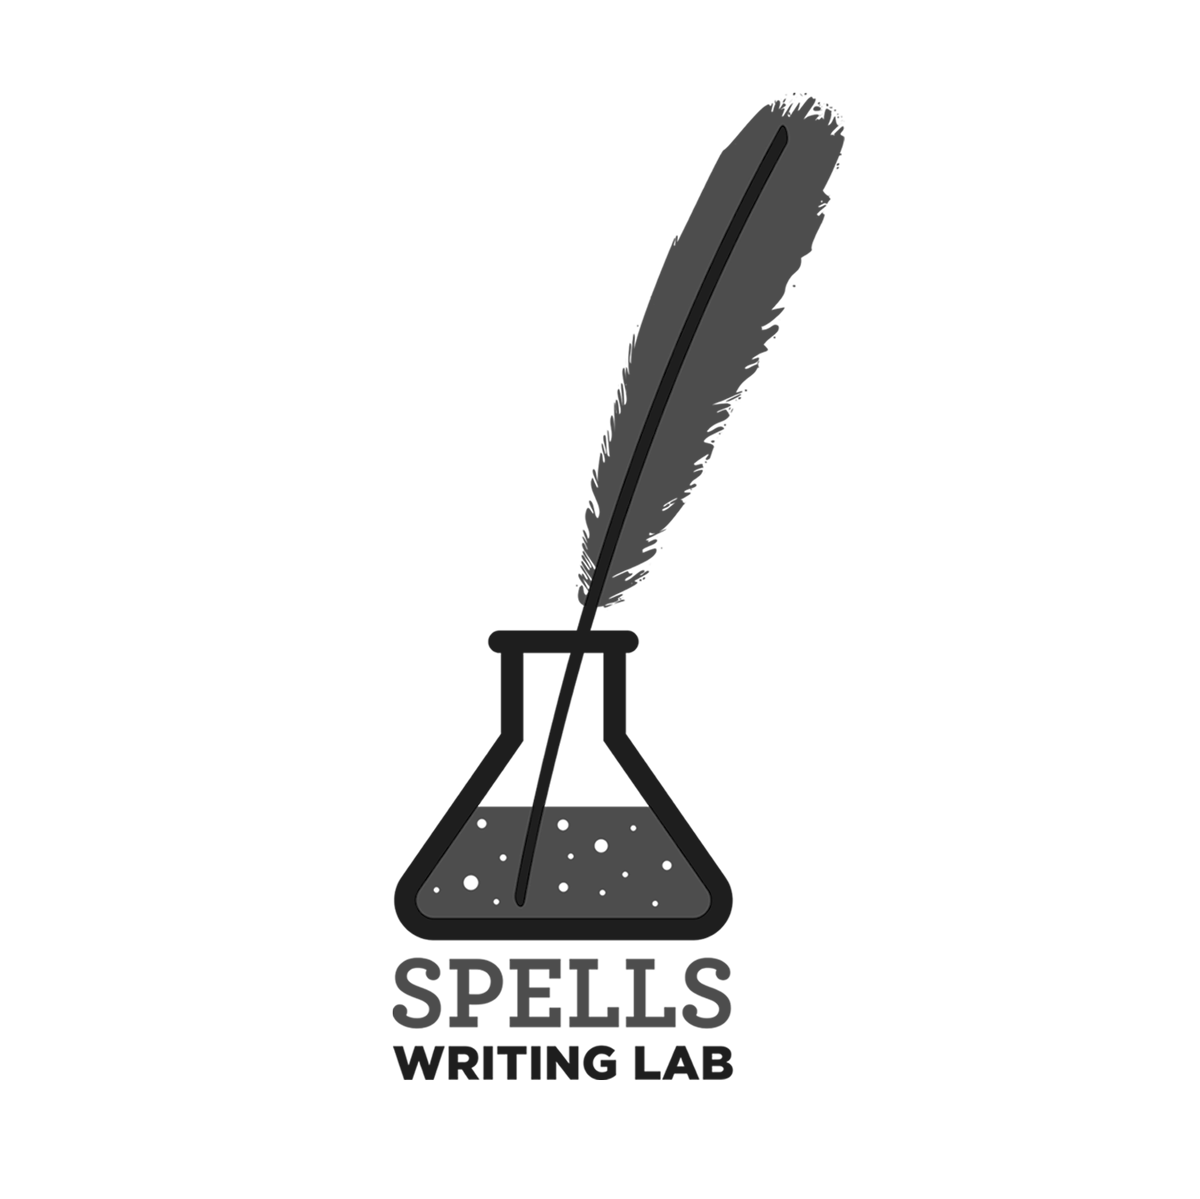 Spells Writing Lab Logo - The Heads of State